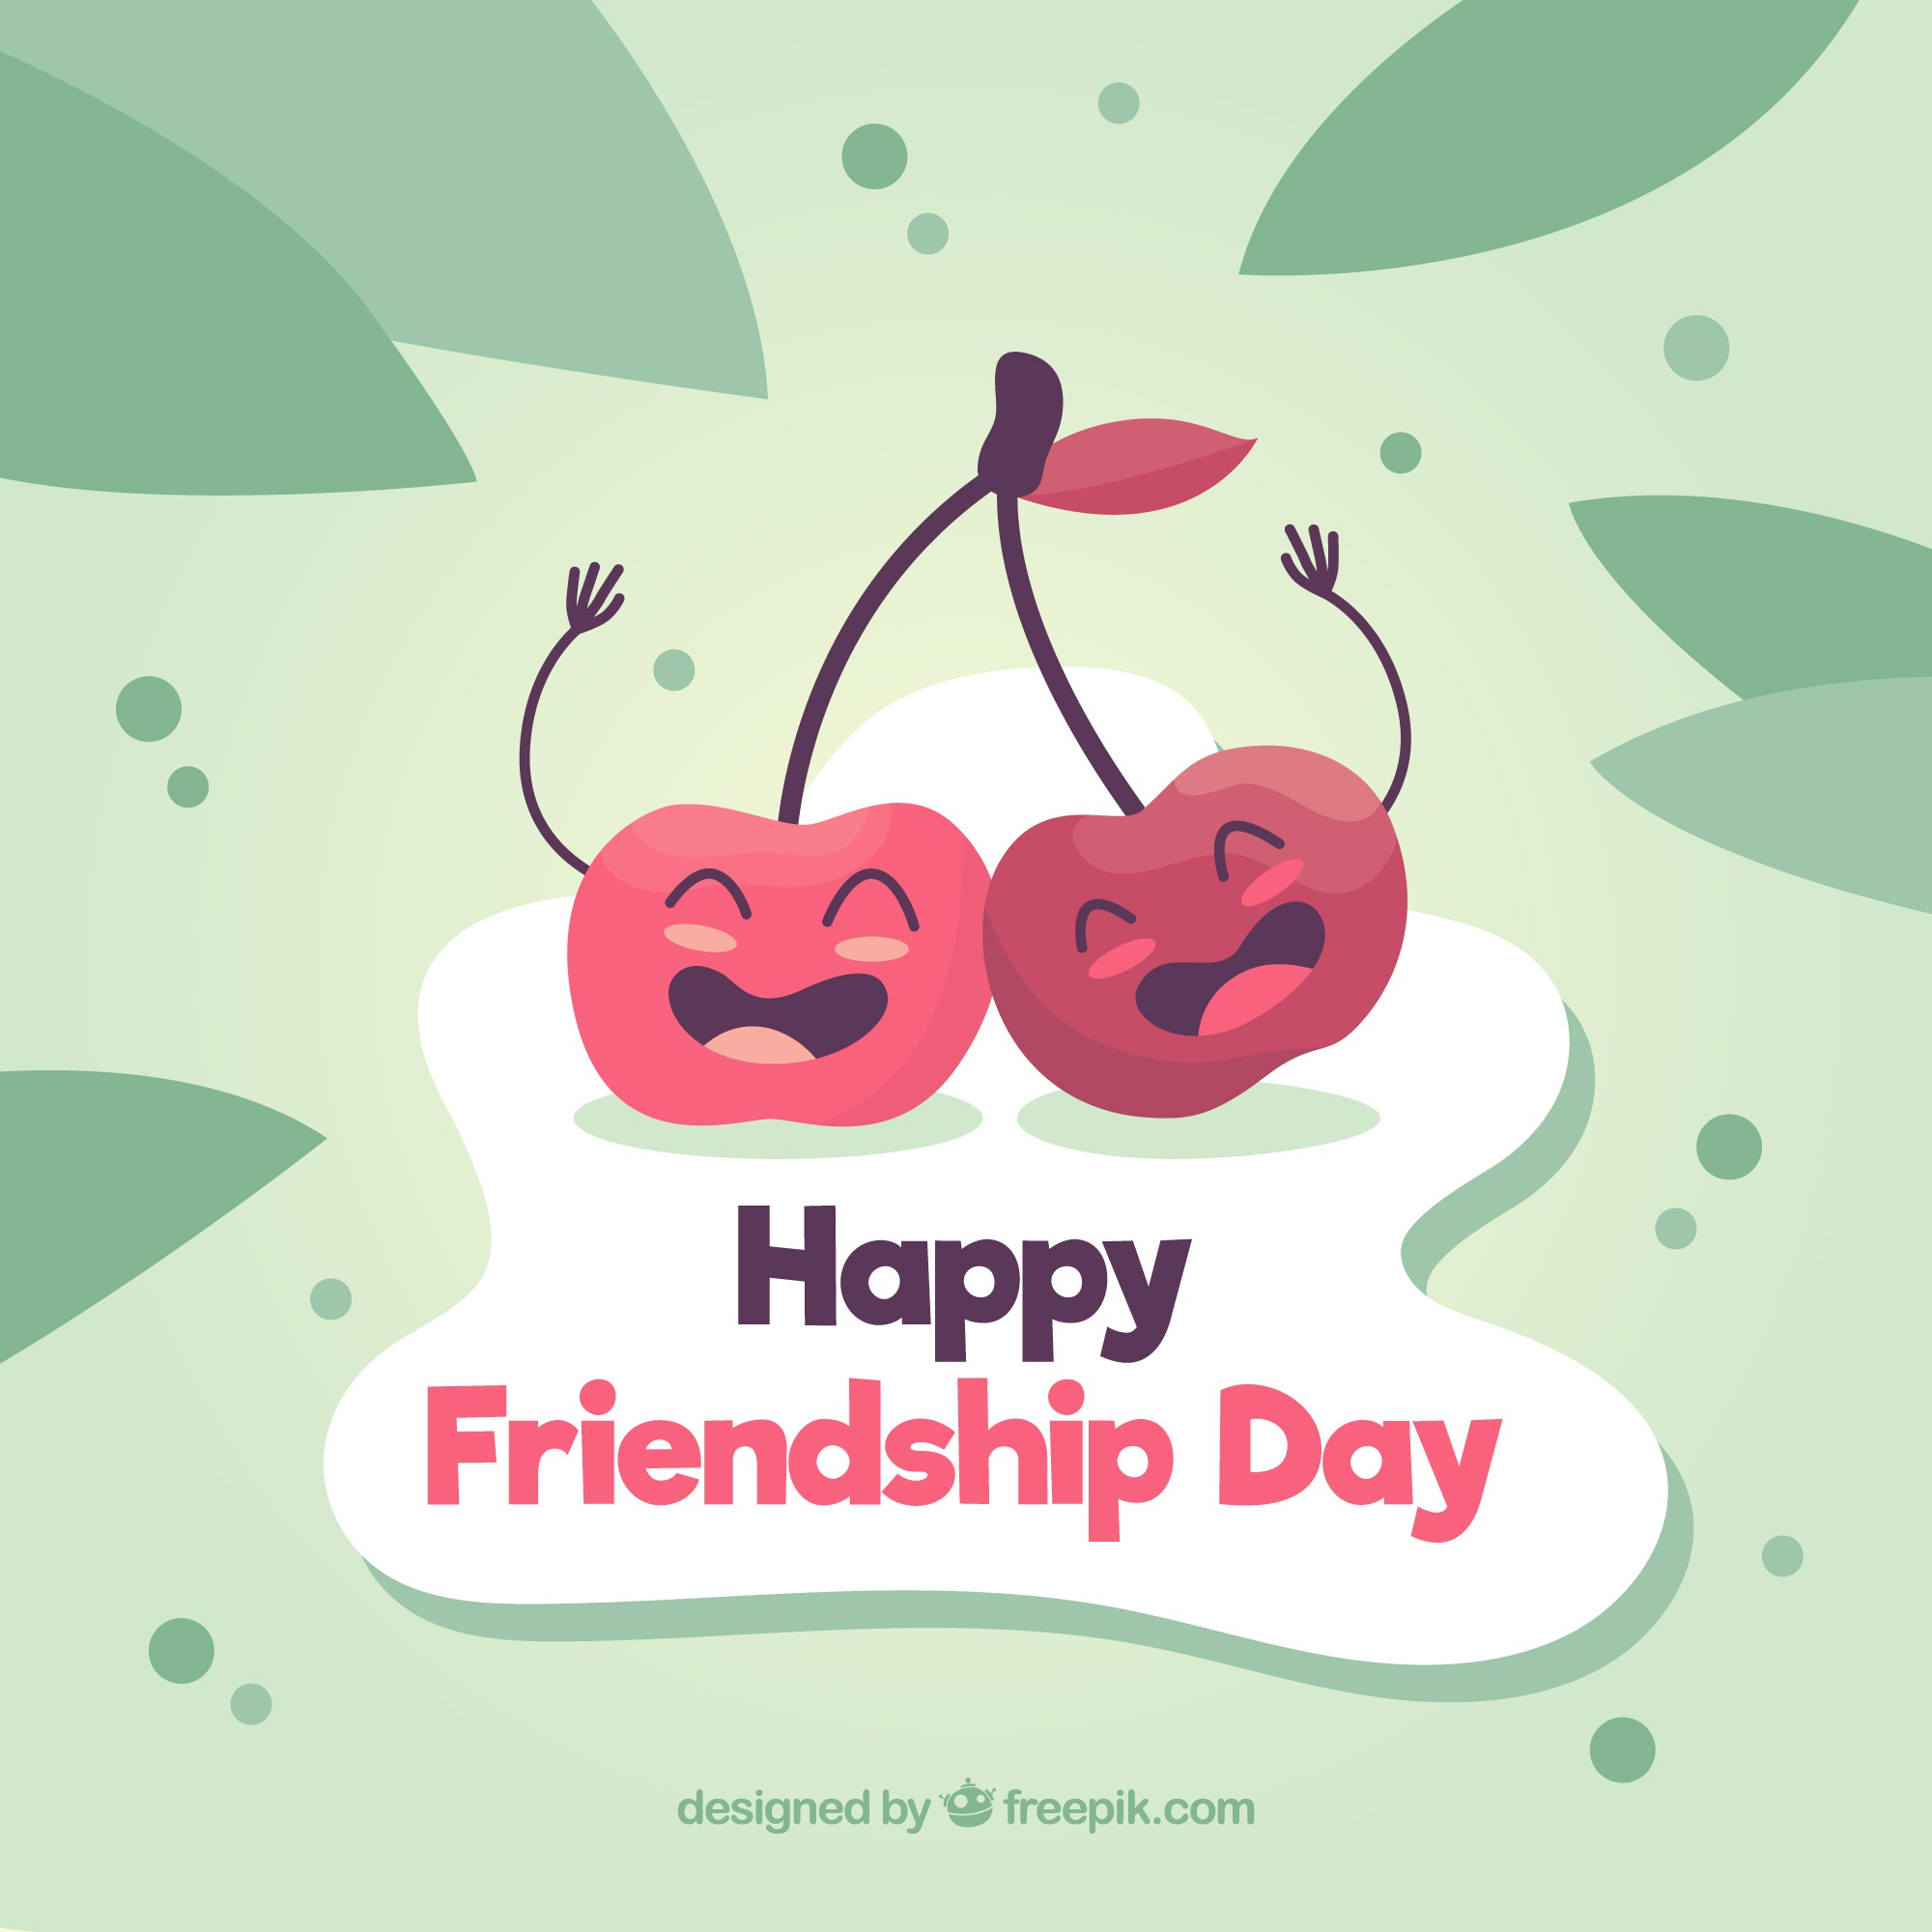 Friendship day background with funny cherries